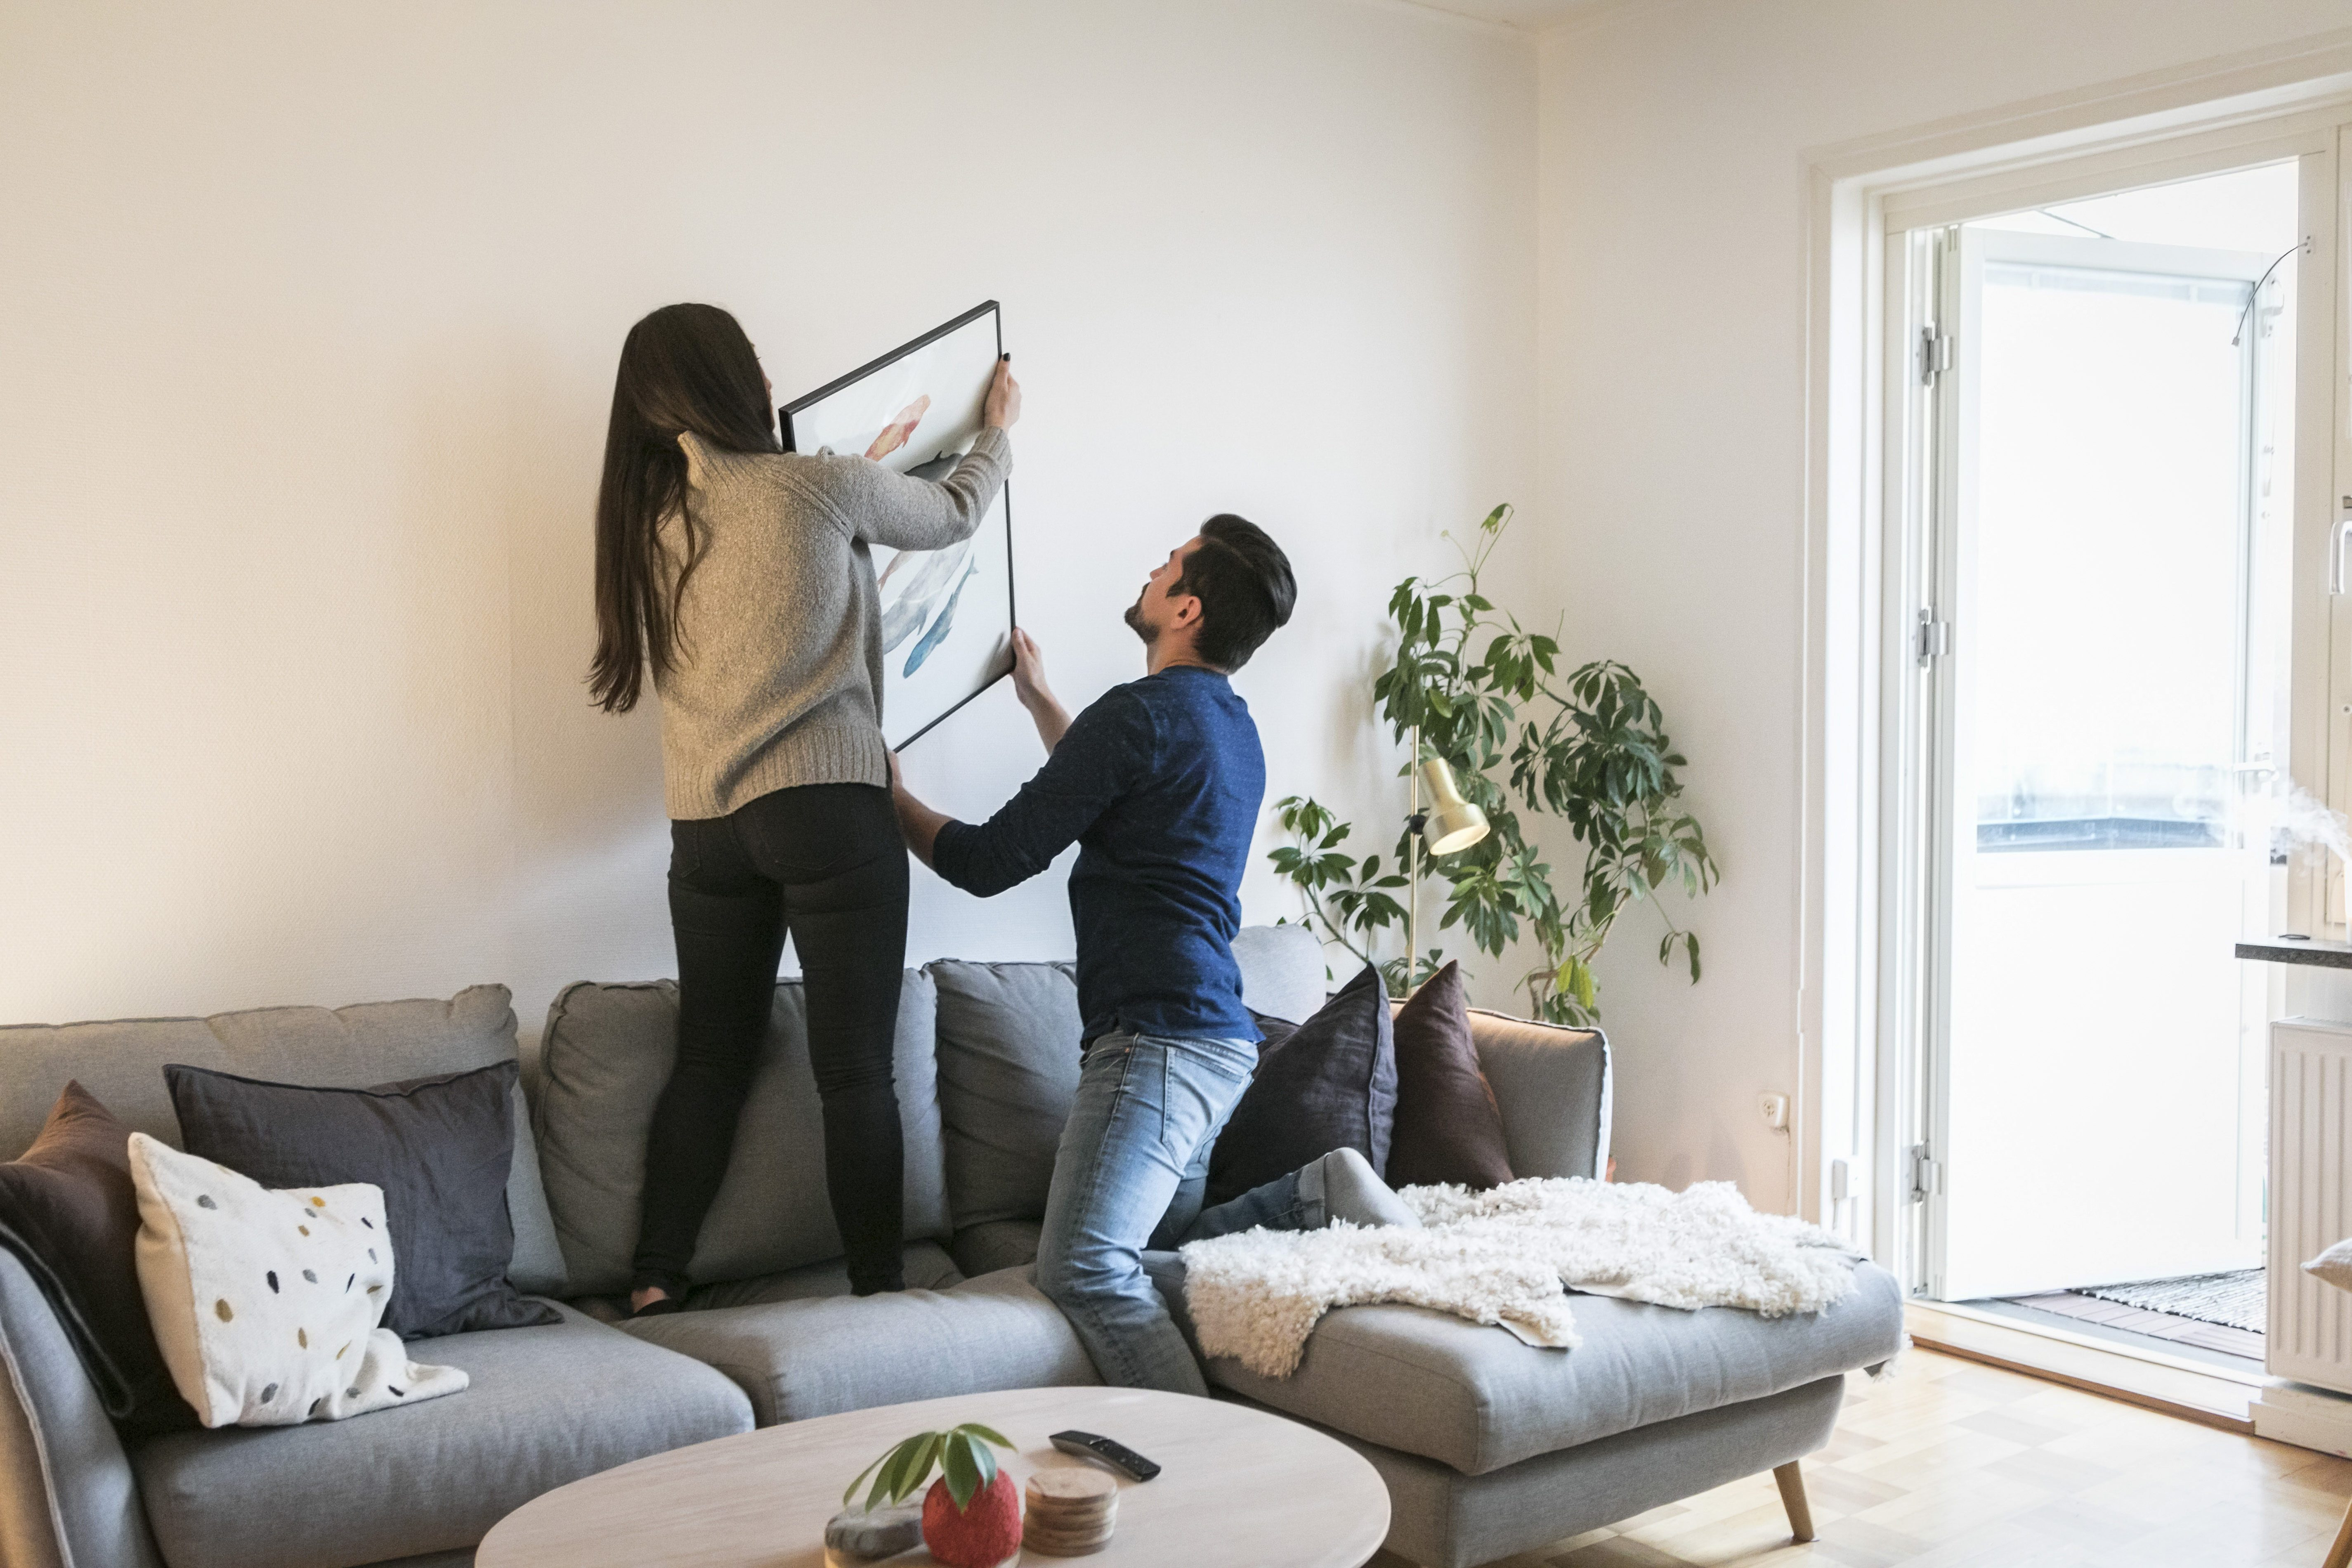 Couple adjusting painting on wall while leaning on sofa at home